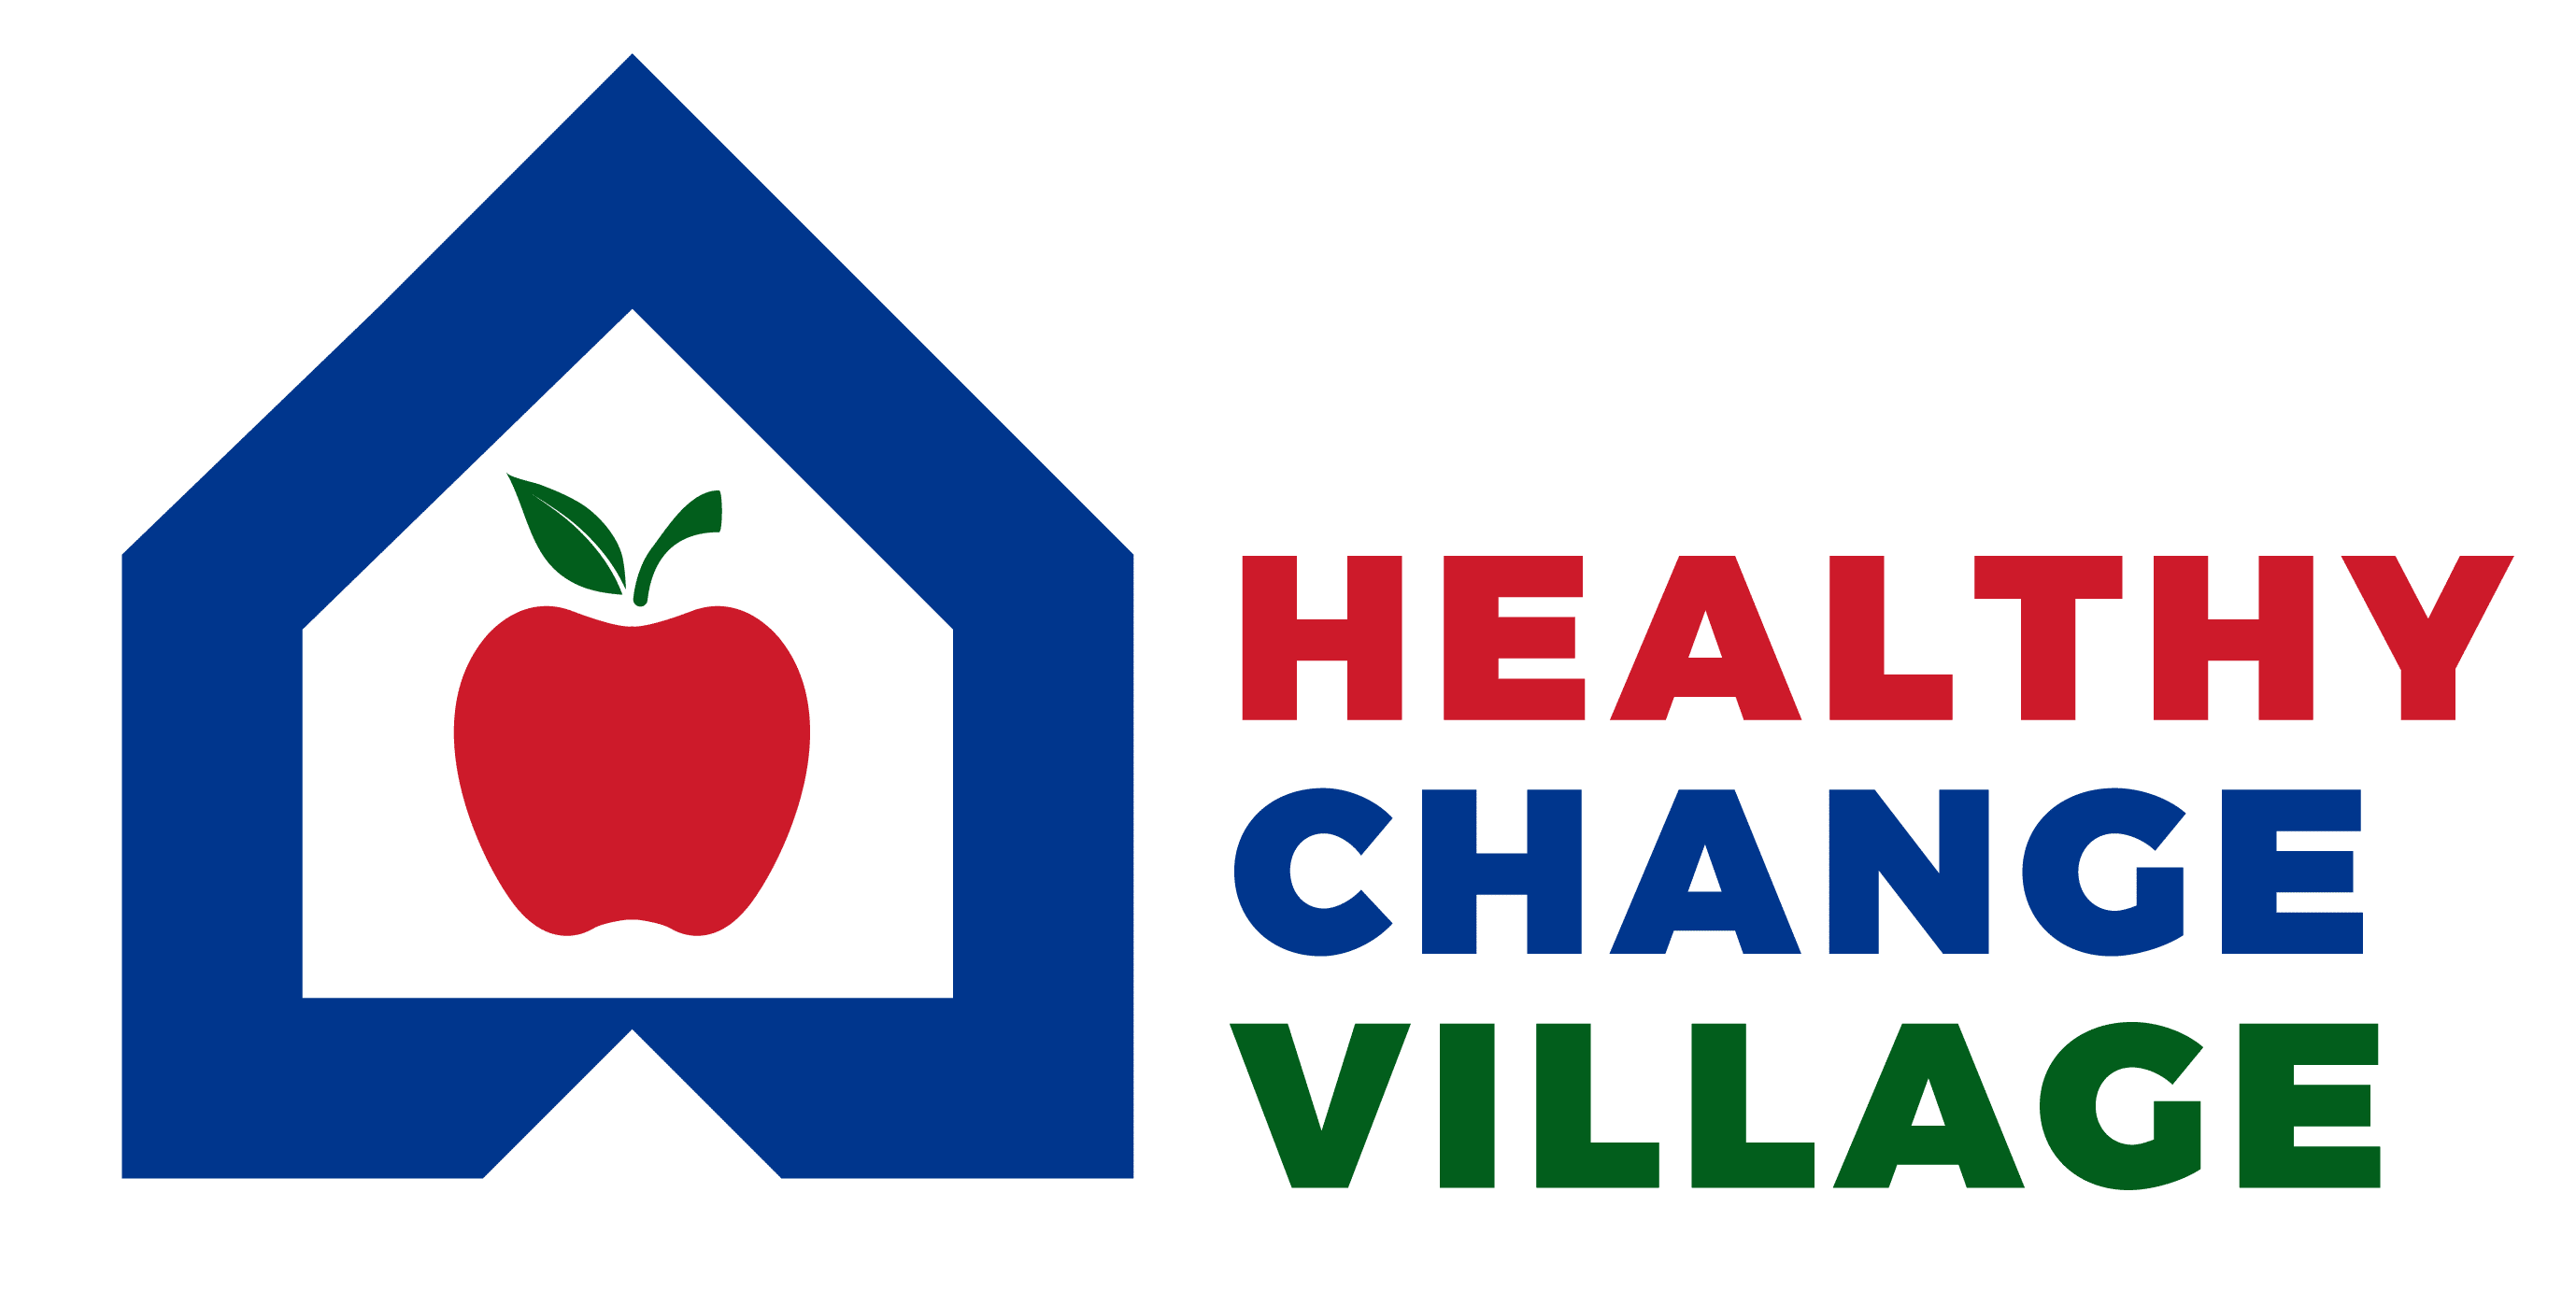 Healthy Change Village Logo Apple inside a house